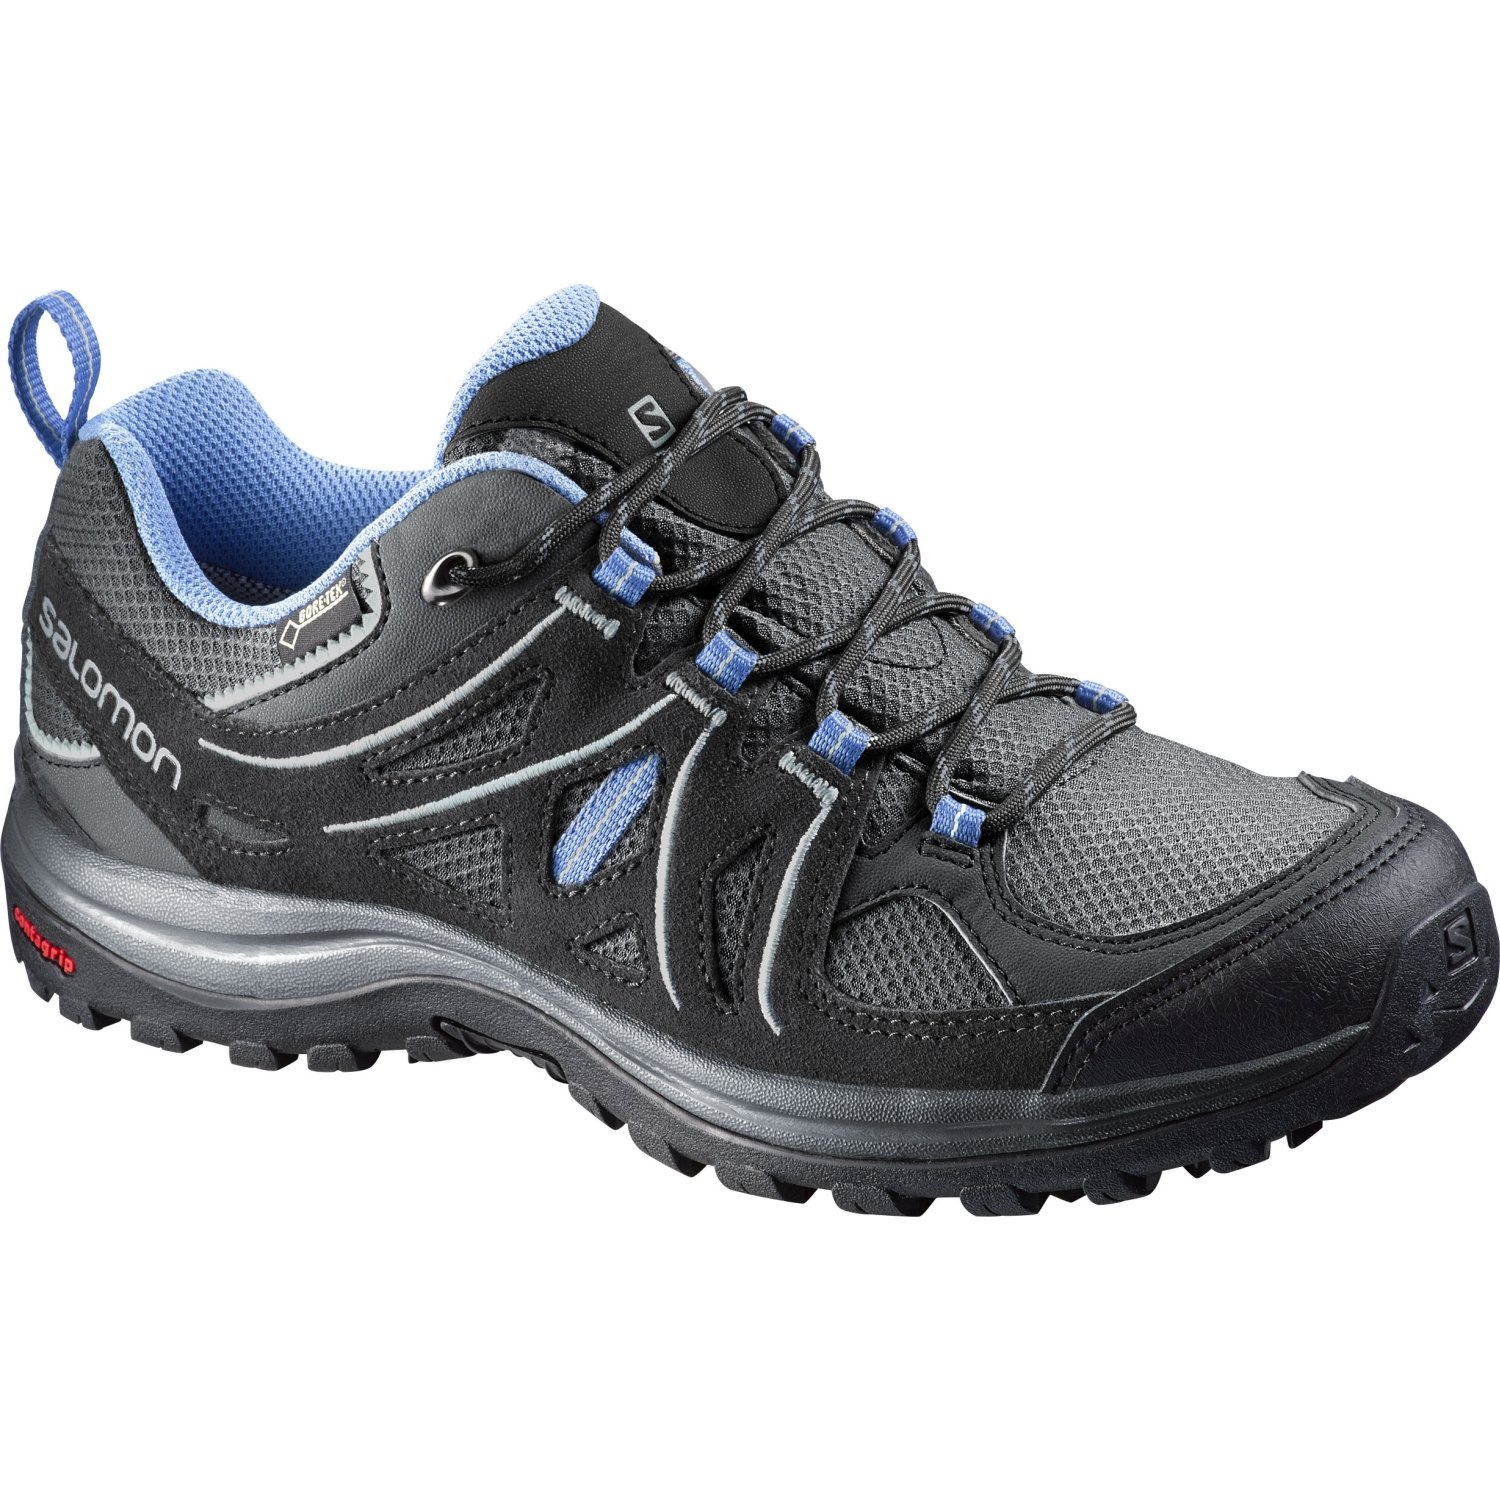 Salomon Women's Ellipse 2 GTX W Hiking Shoe B00ZLN8JBI 7 B(M) US|Asphalt/Black/Petunia Blue